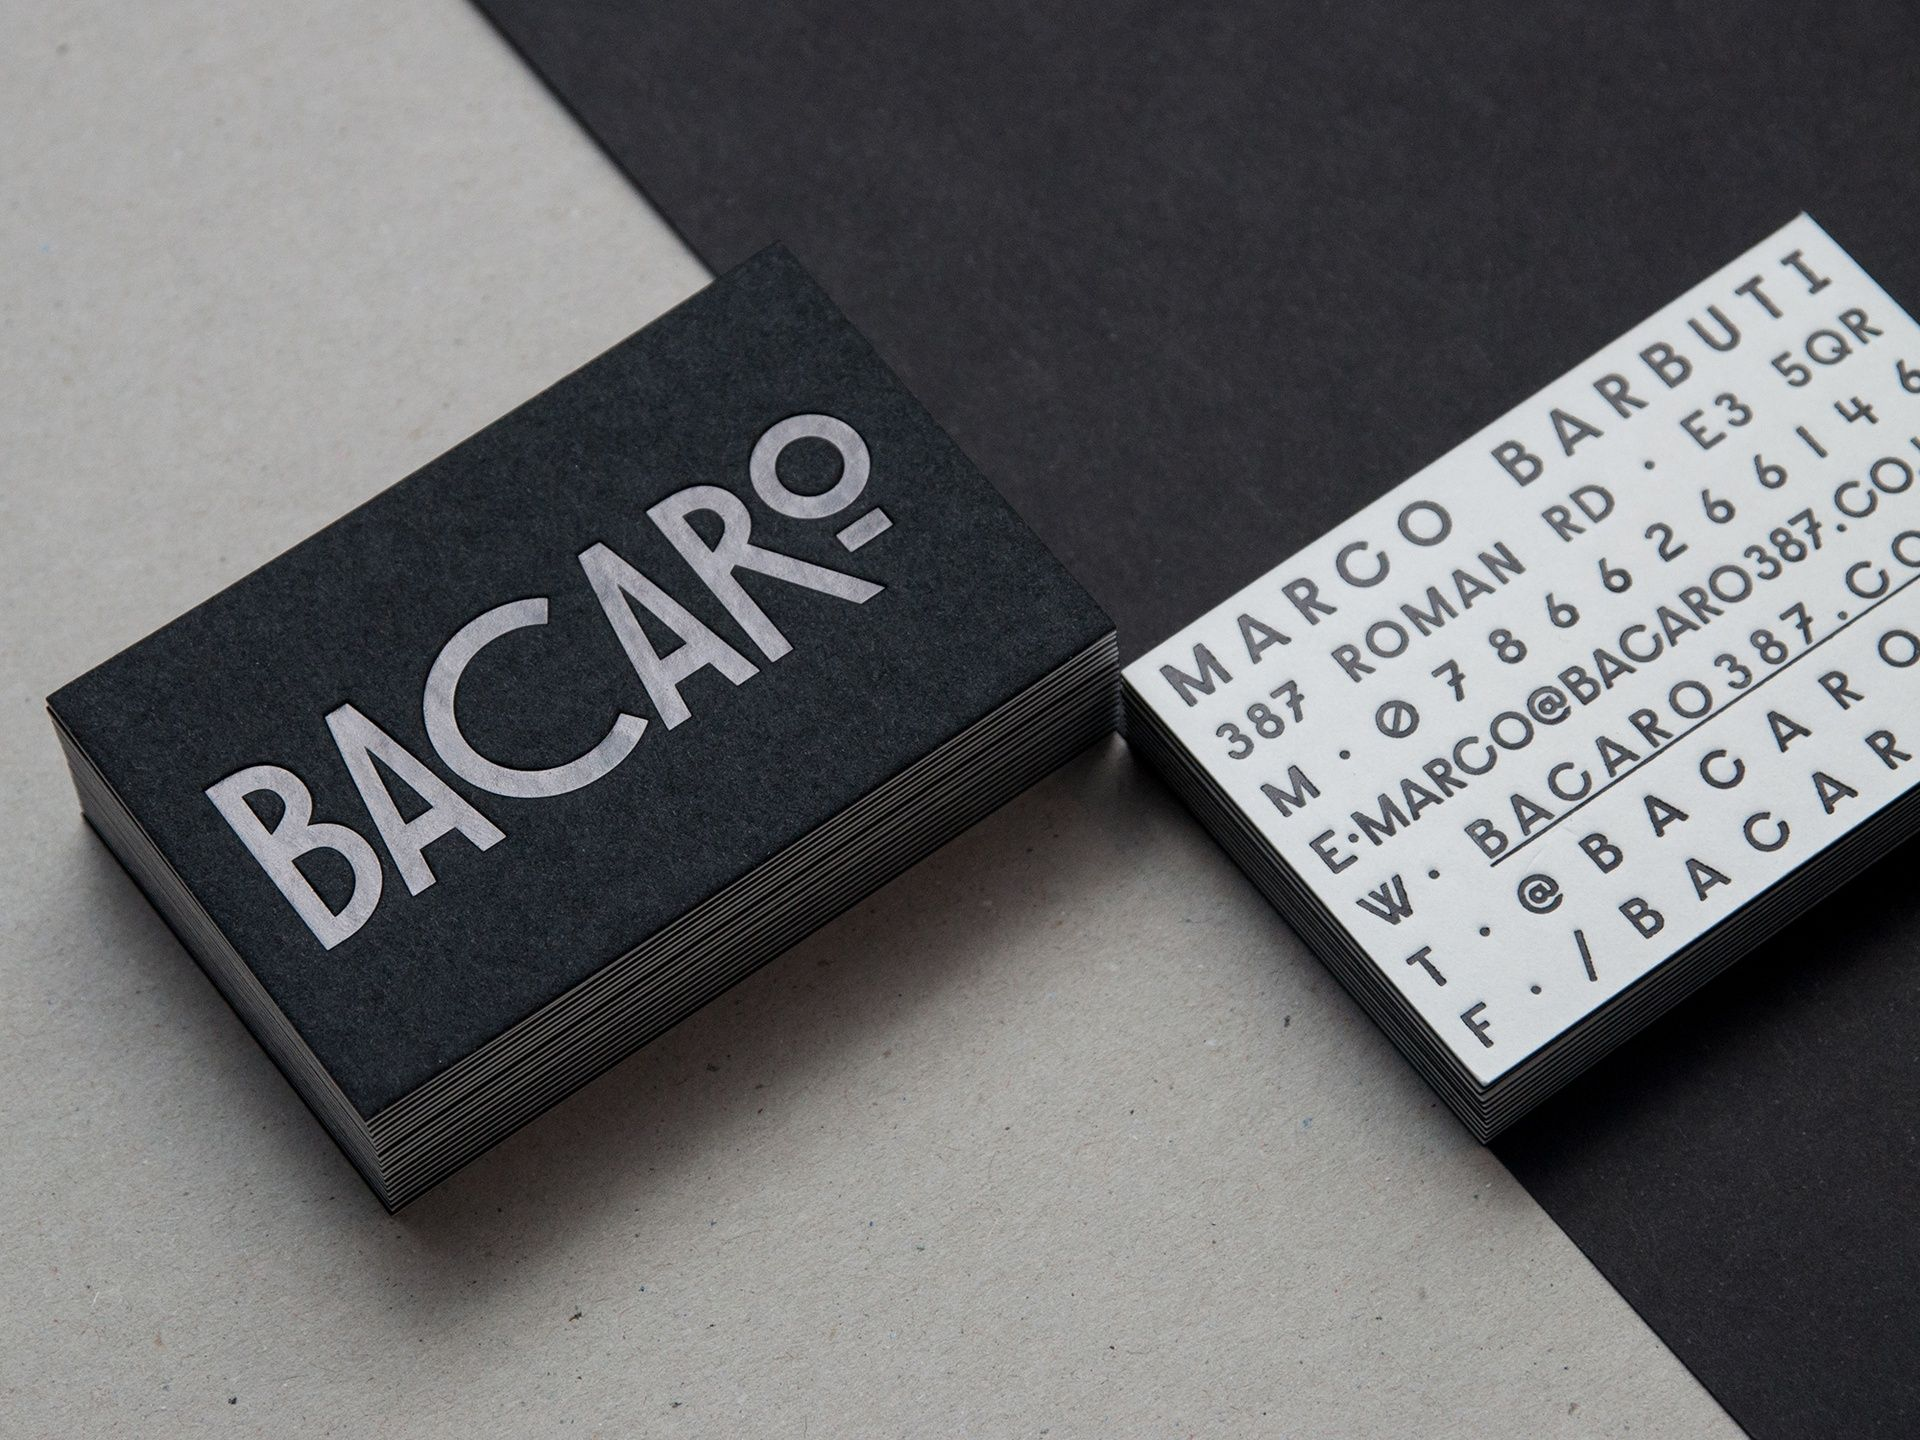 Bacaro Business Cards Businesscard Graphicdesign Print Letterpress Elegant Business Cards Design Beautiful Business Card Elegant Business Cards